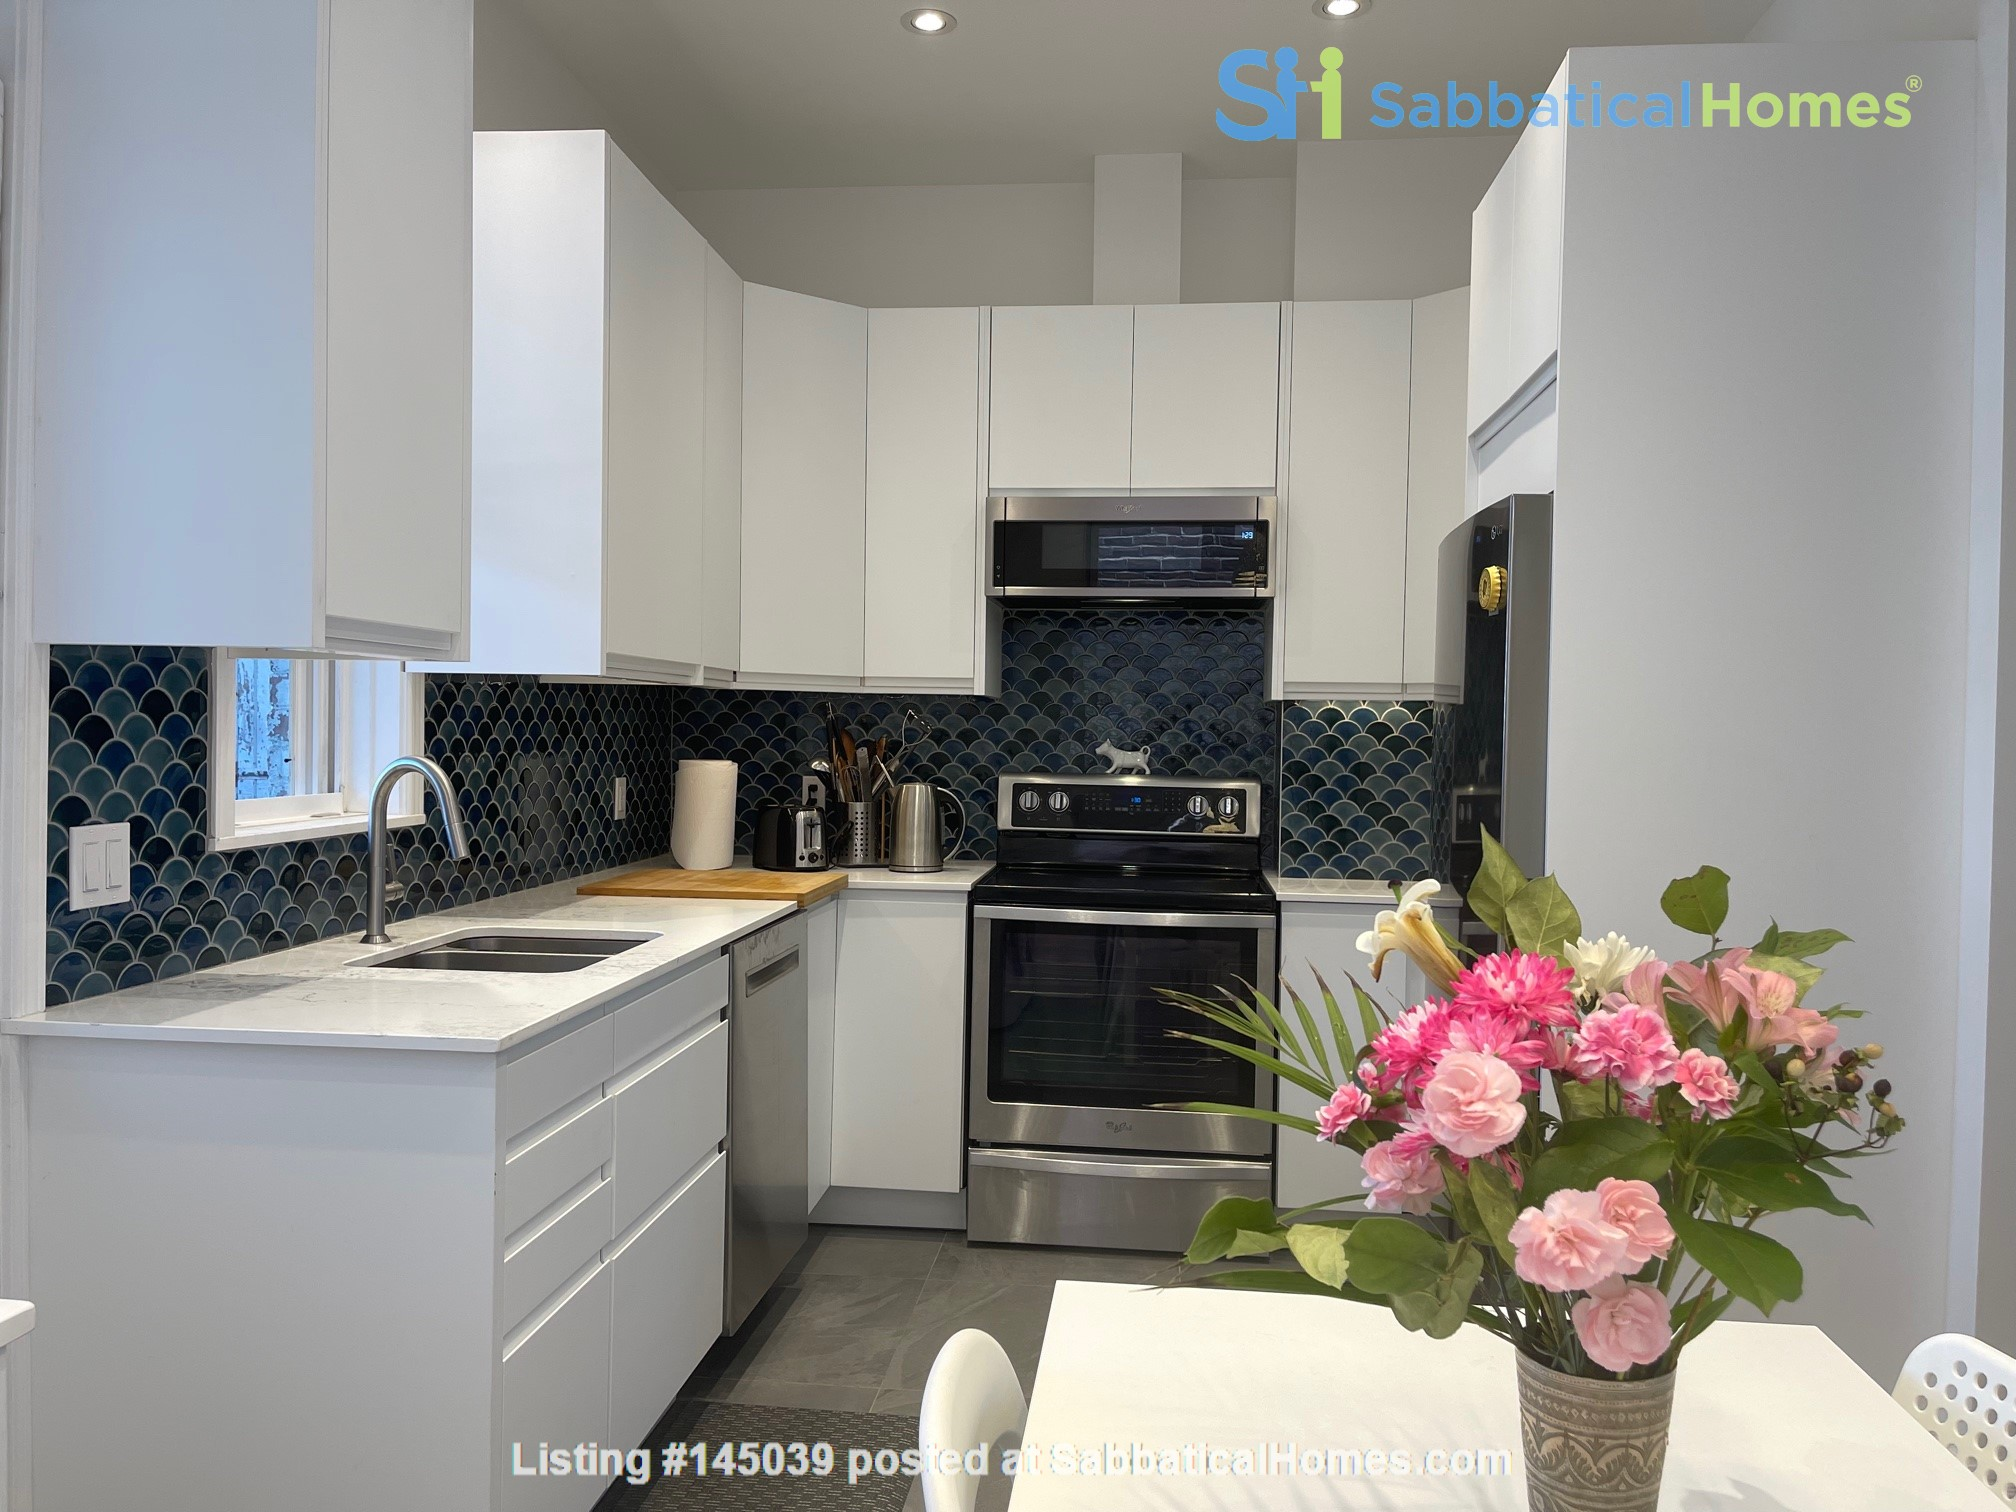 Lovely renovated apartment in a perfect Montreal setting! Home Rental in Montréal, Québec, Canada 2